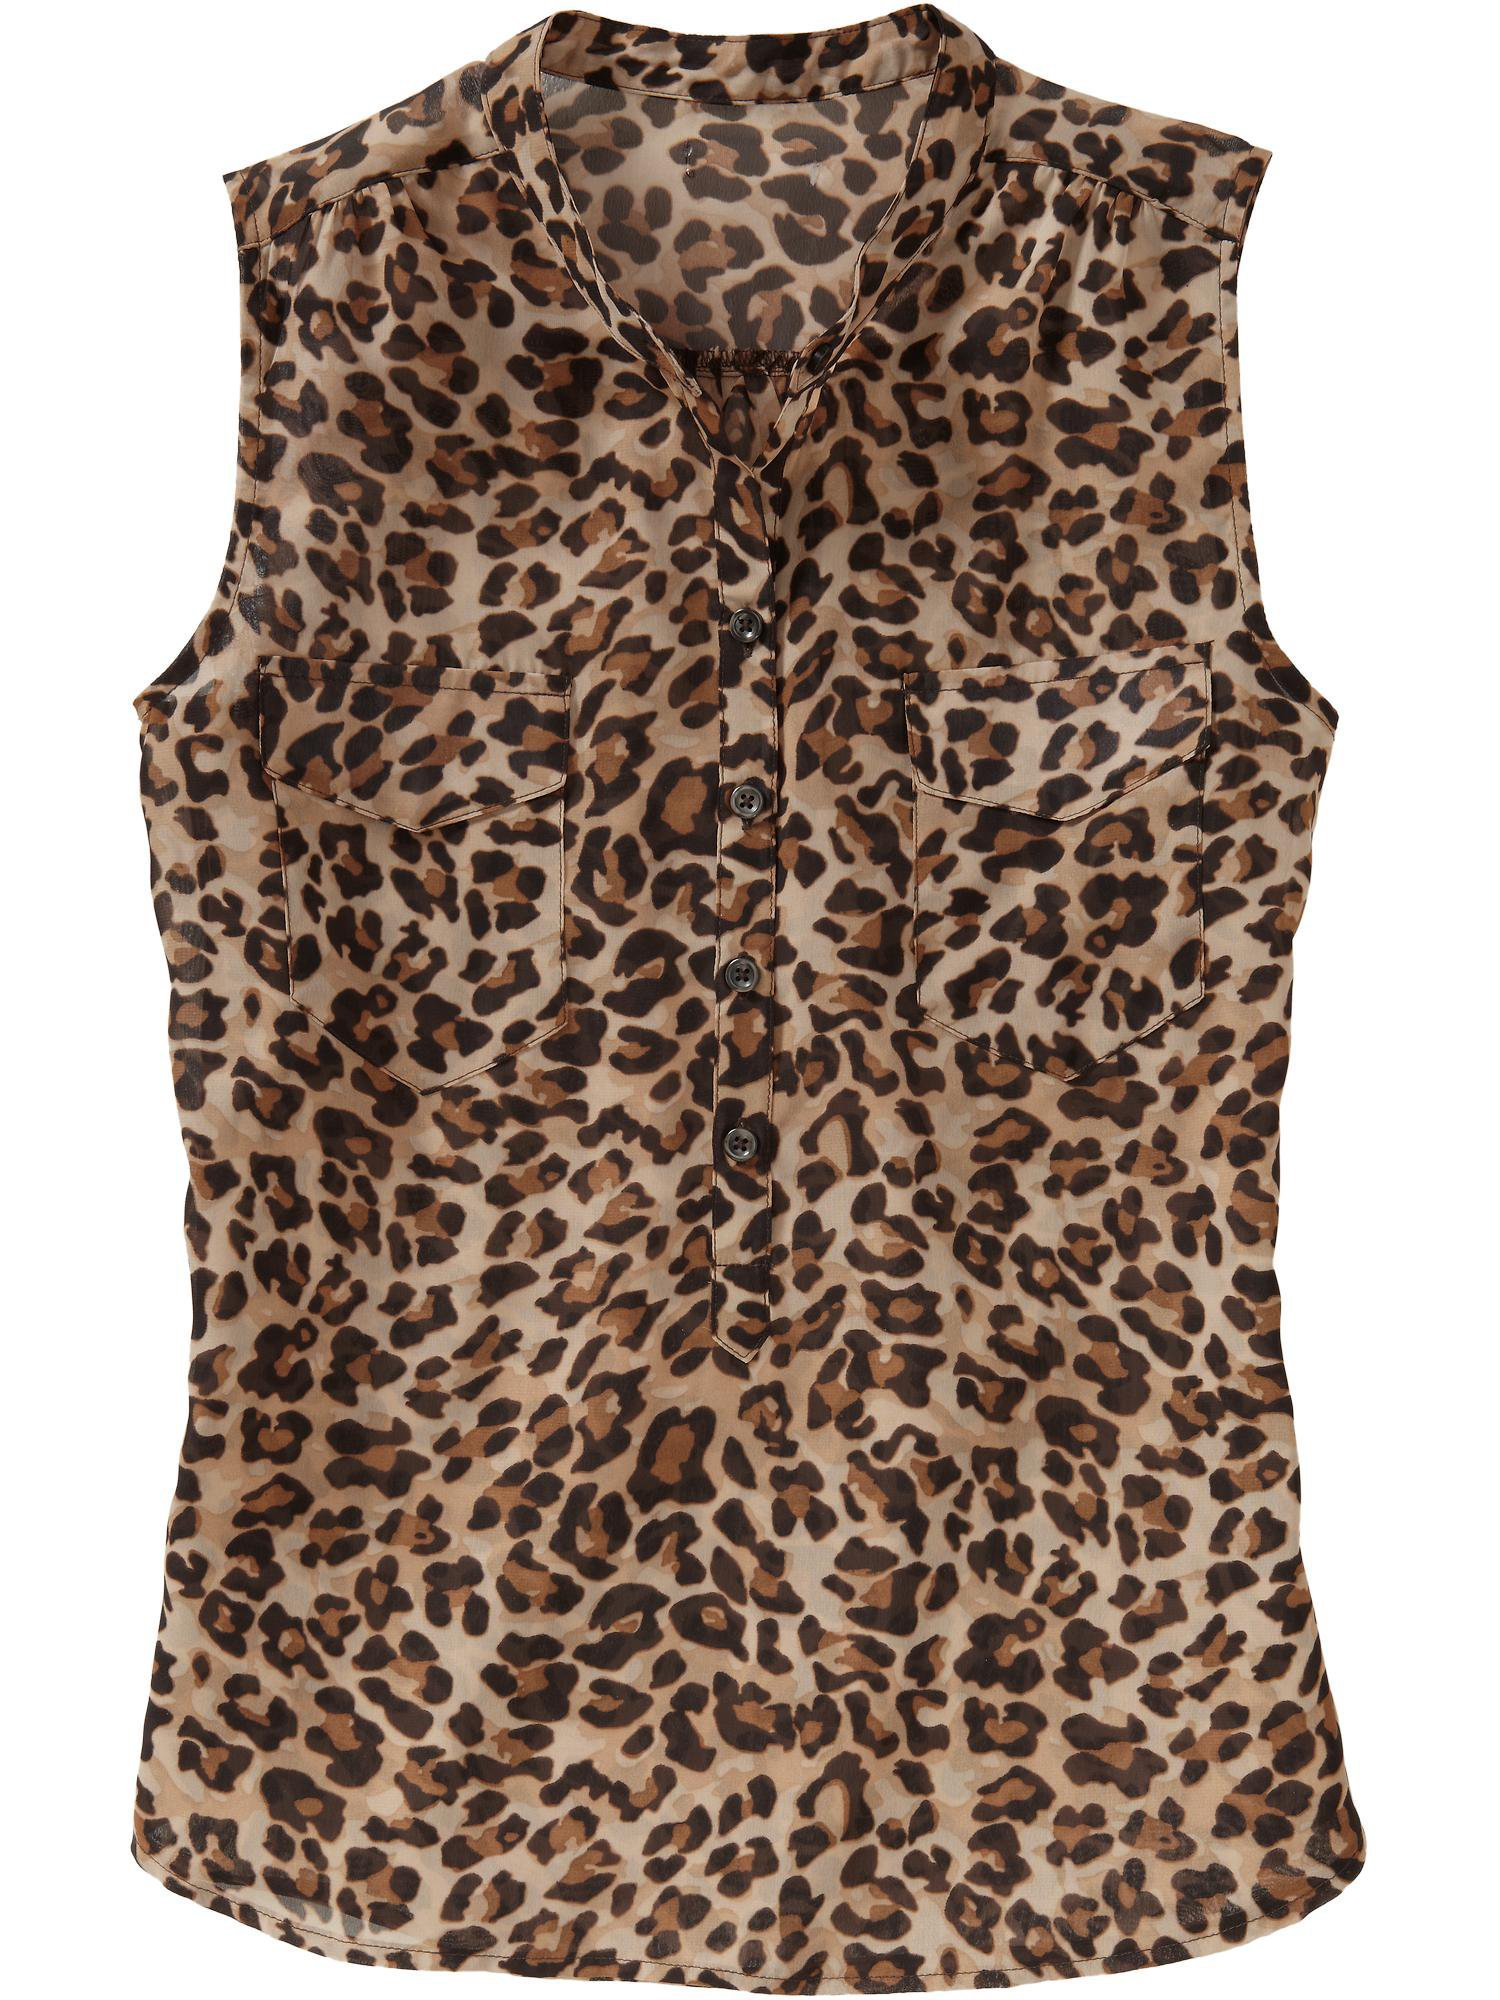 Animal print remains a fashion favourite this season, and we have a gorgeous collection here at Wallis for you. Chic leopard print blouses and shirts look great with skinny jeans and qrqceh.tk try an animal print dress for the perfect day to evening look.